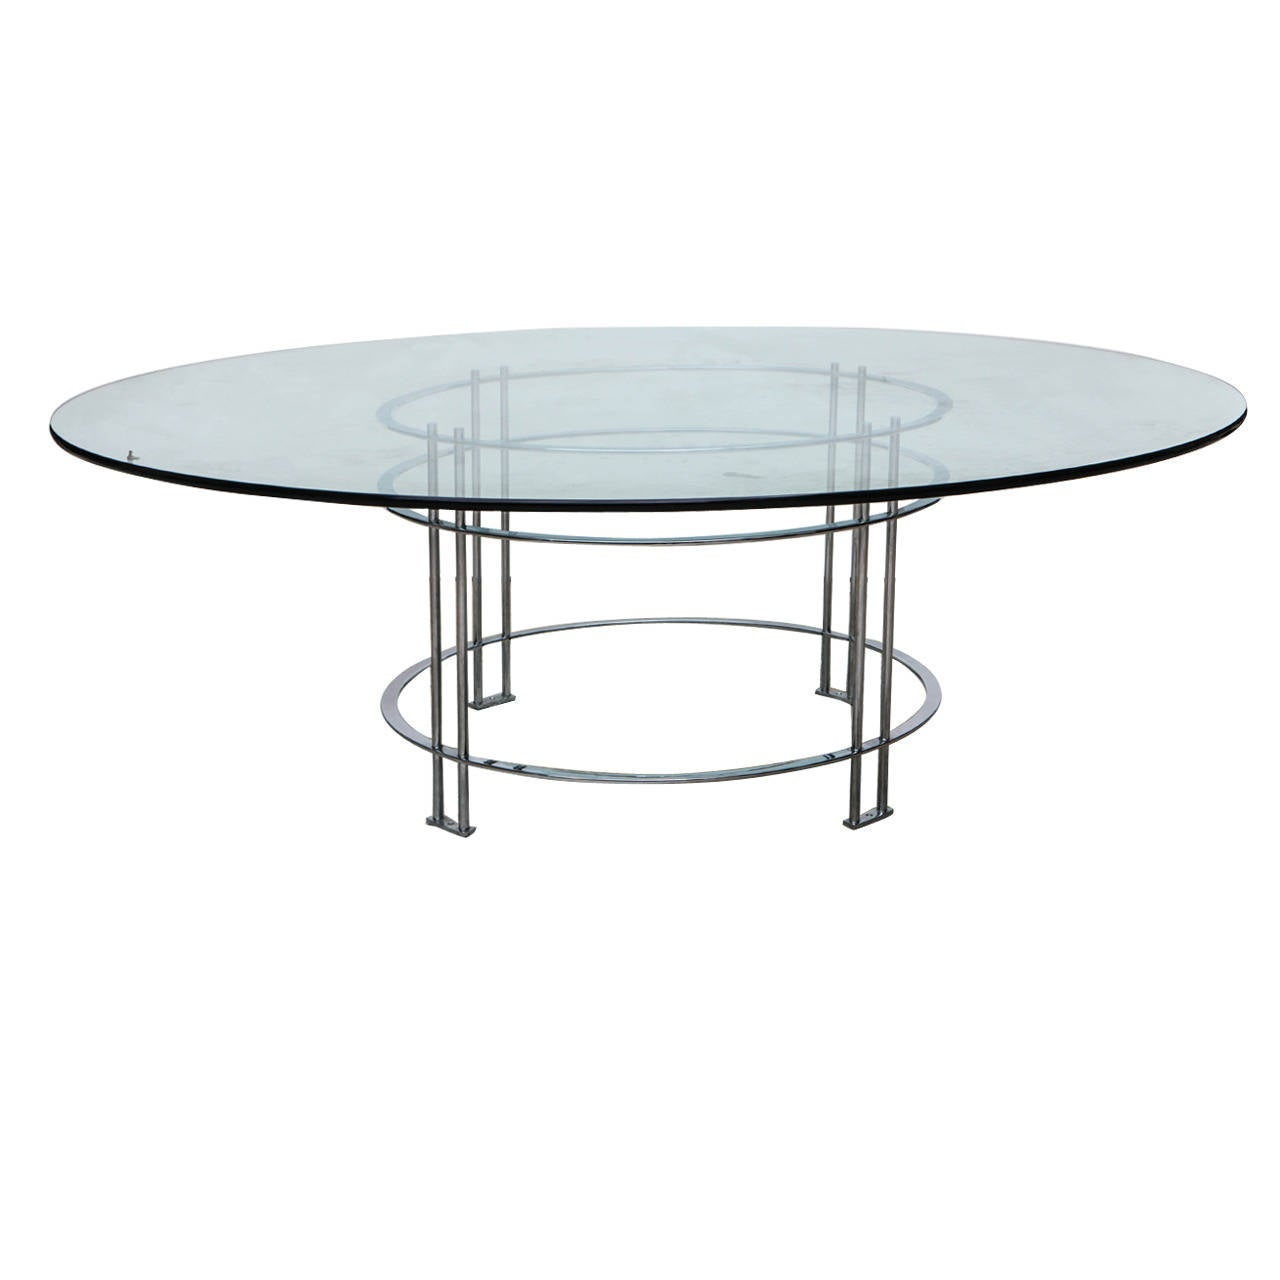 vintage round dining table with glass top for sale at 1stdibs. Black Bedroom Furniture Sets. Home Design Ideas